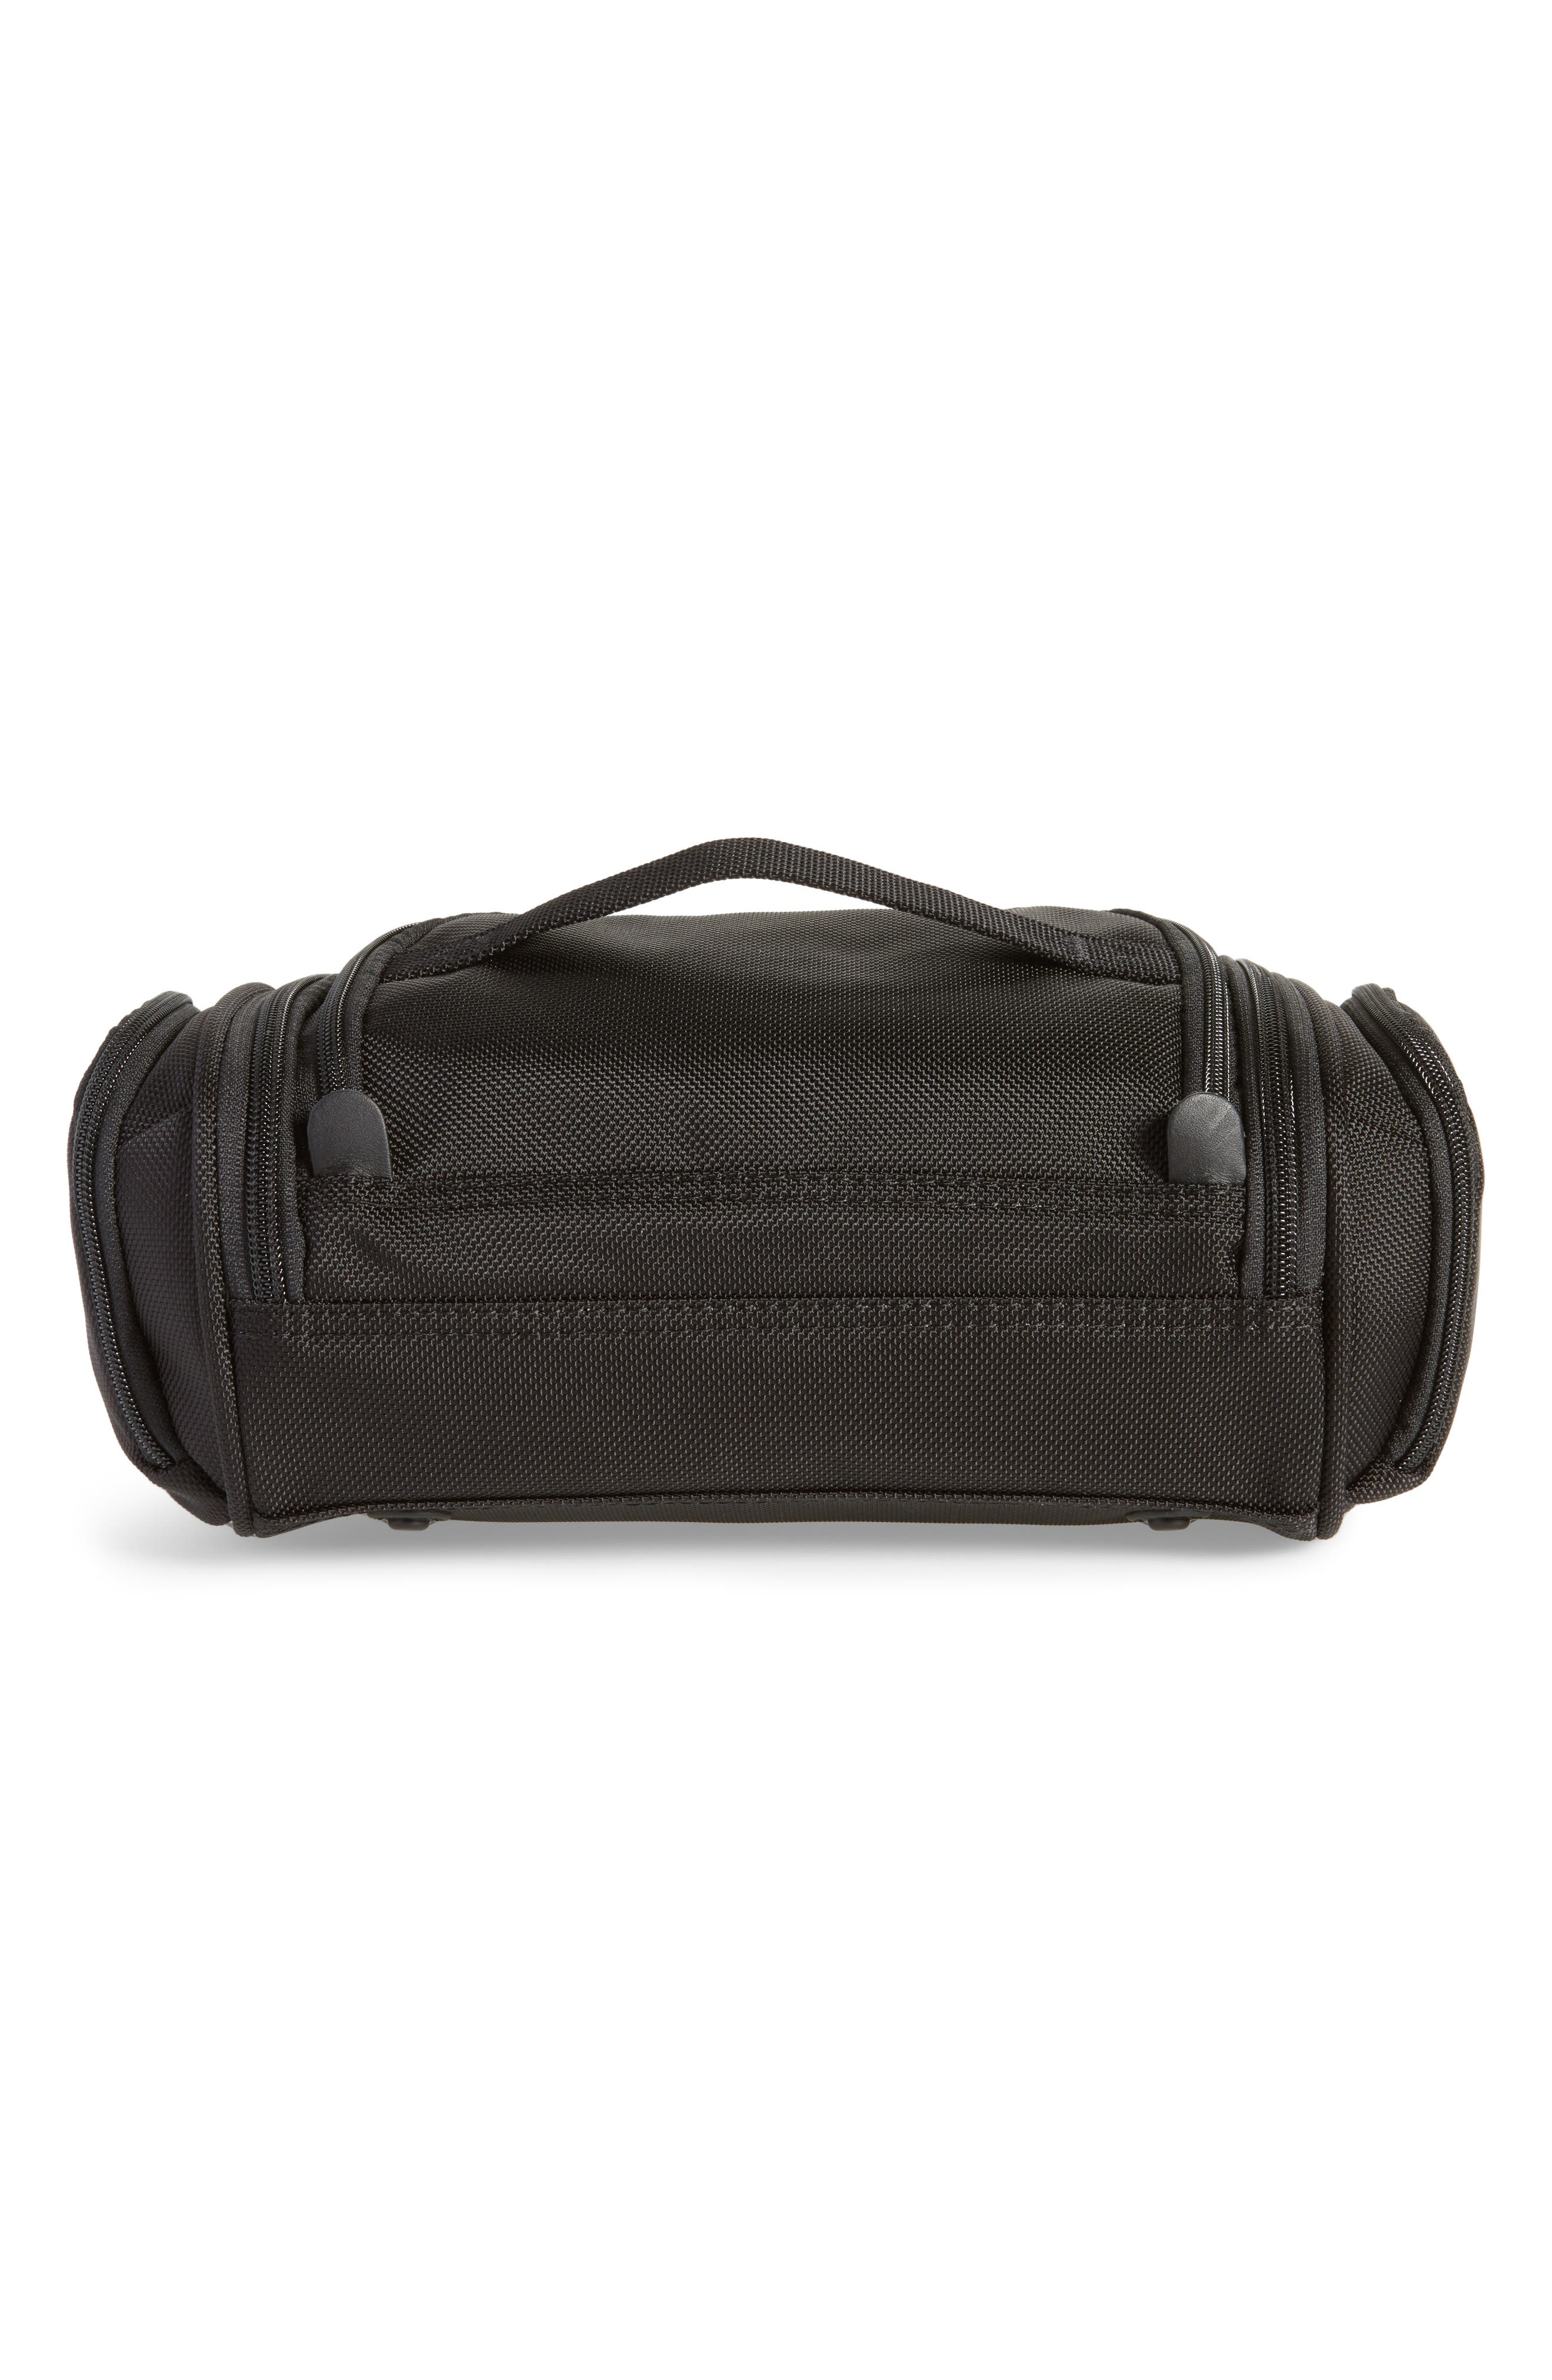 Alternate Image 3  - Briggs & Riley Baseline - Executive Toiletry Kit